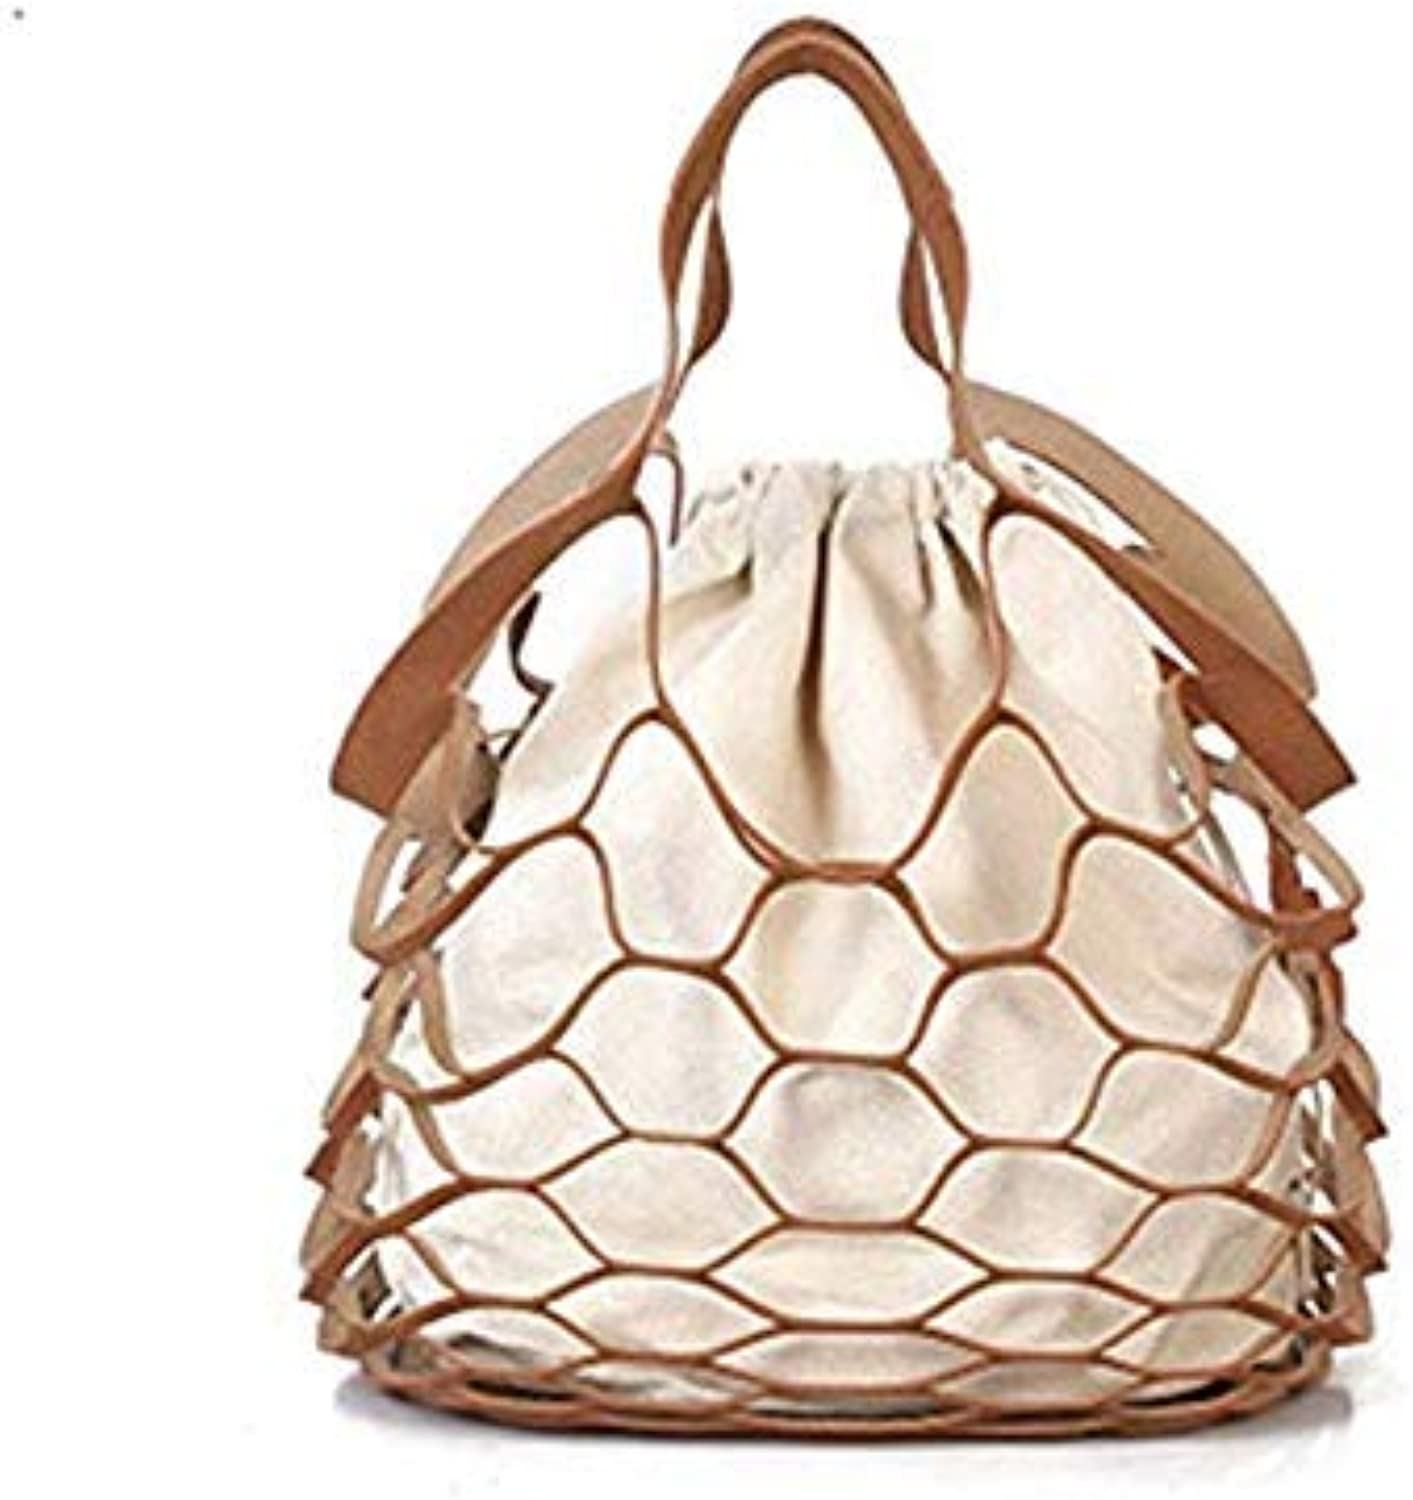 Bloomerang Women Handbags Hollow Out Mesh Design Net Canvas Composite Bag Ladies Drawstring Tote Casual Beach Bags Summer New Famous Brands color Brown